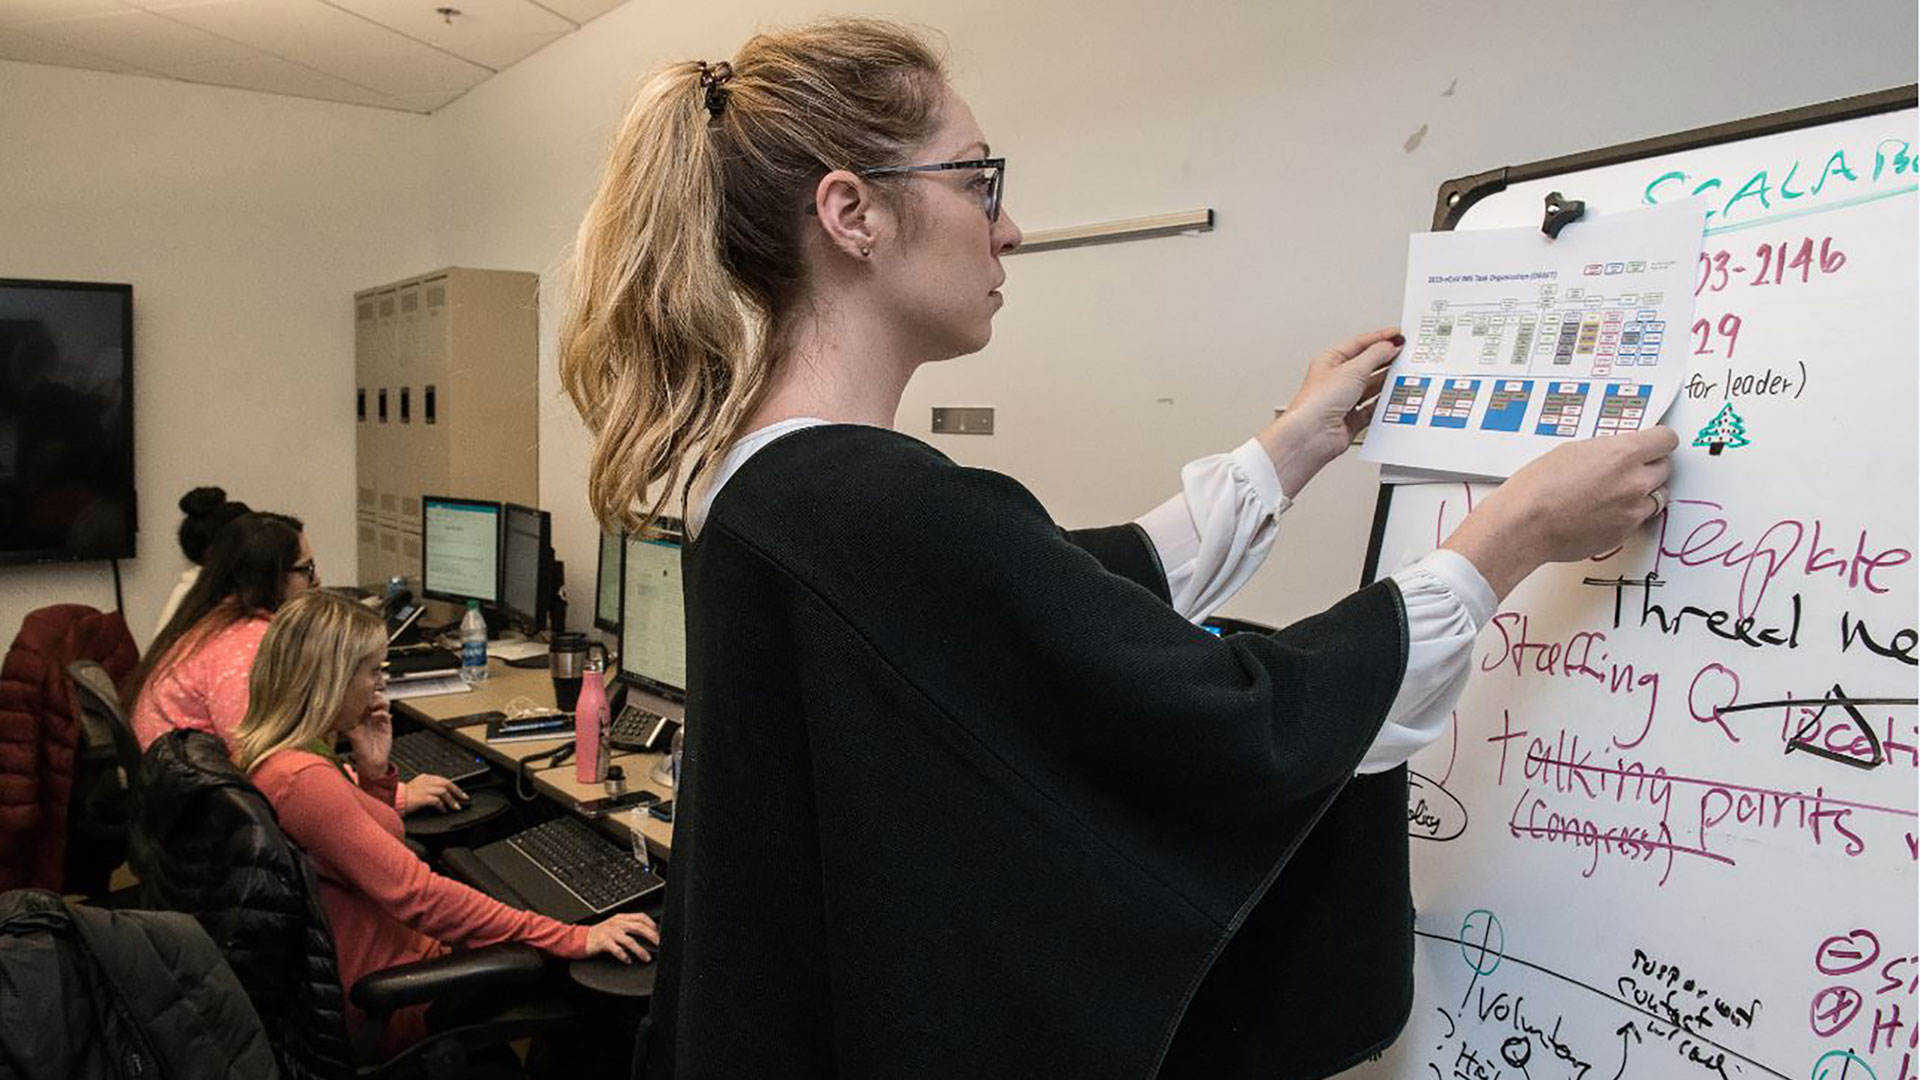 Workers in the Centers for Disease Control and Prevention's Emergency Operations Center, which was activated to work with the World Health Organization, federal, state and local public health agencies and others responding to the novel coronavirus outbreak.